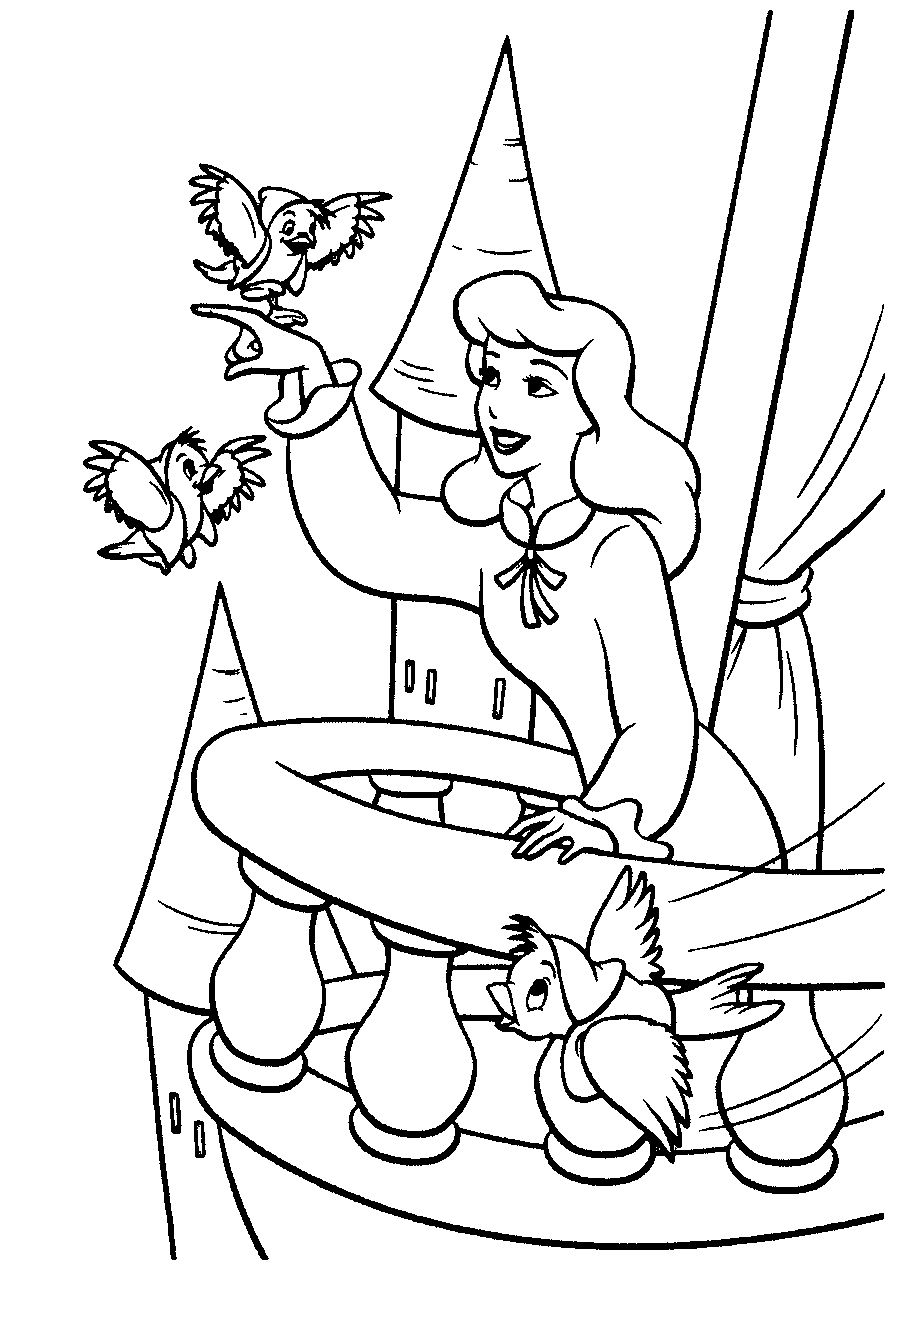 Coloring pictures cinderella - Fans Of Cinderella Will Love This Coloring Sheet To Print And Color Just Click On